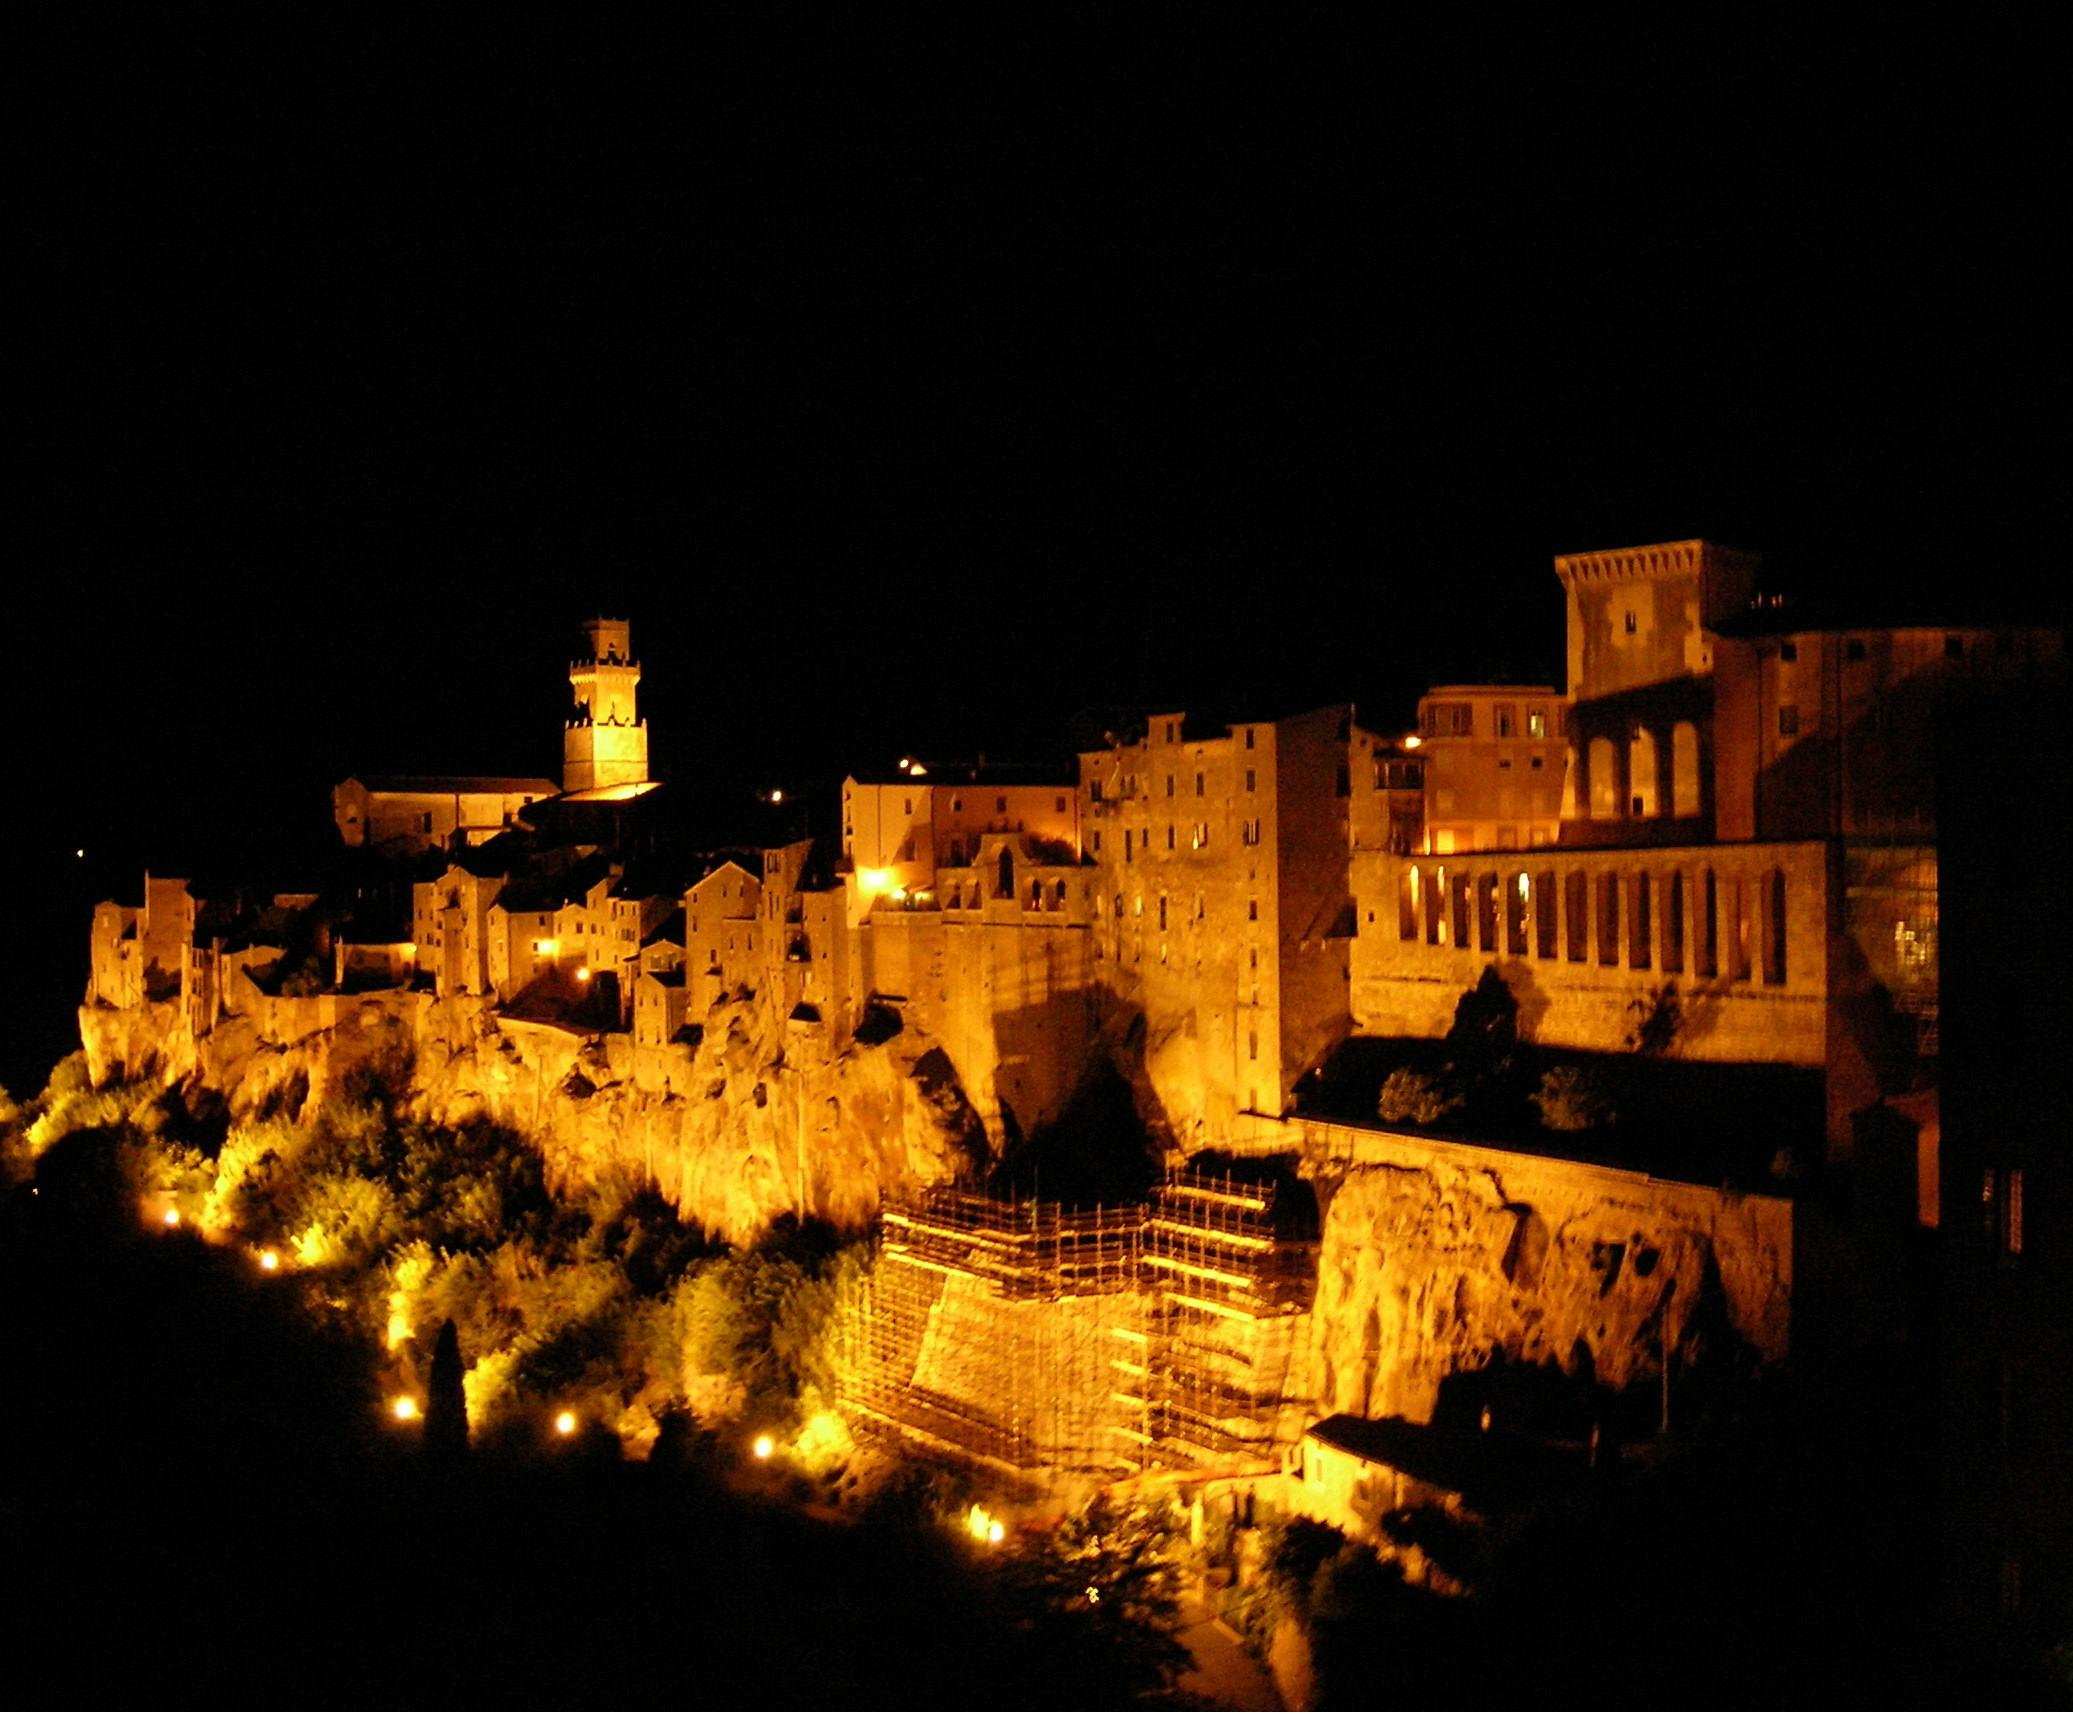 Pitigliano, Italy, at night